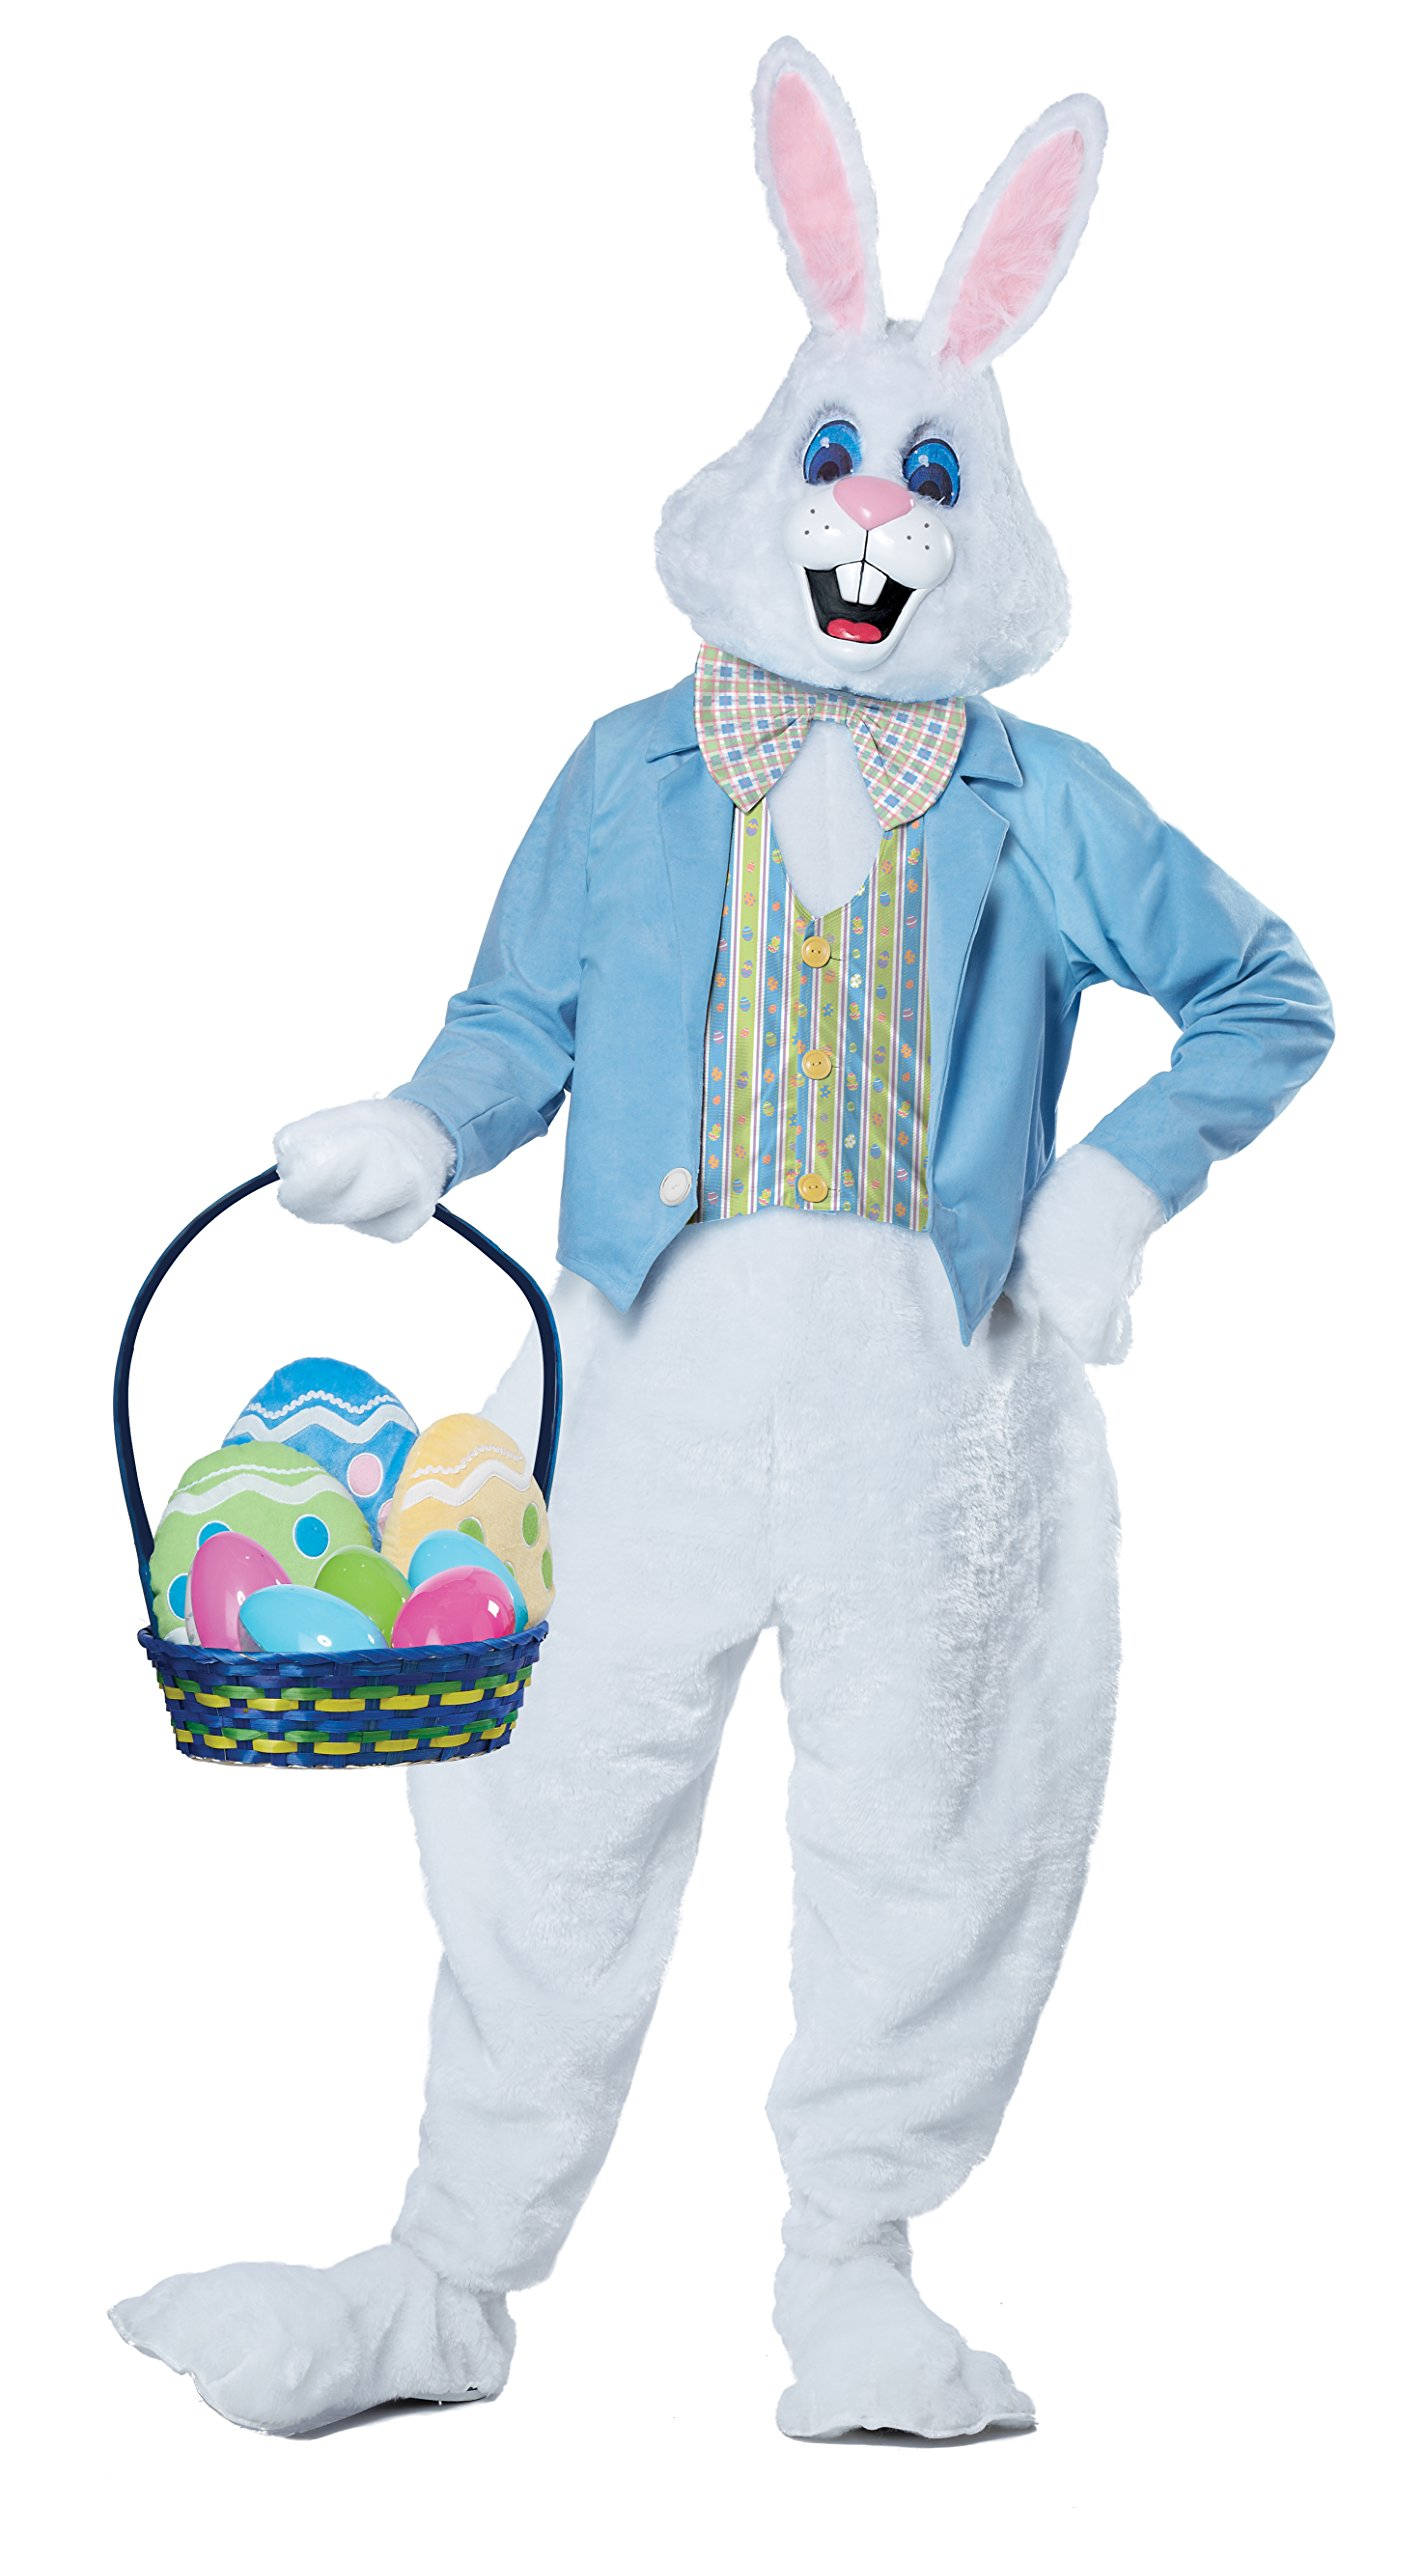 California Costumes Men's Deluxe Easter Bunny Costume, White/Blue, Small/Medium